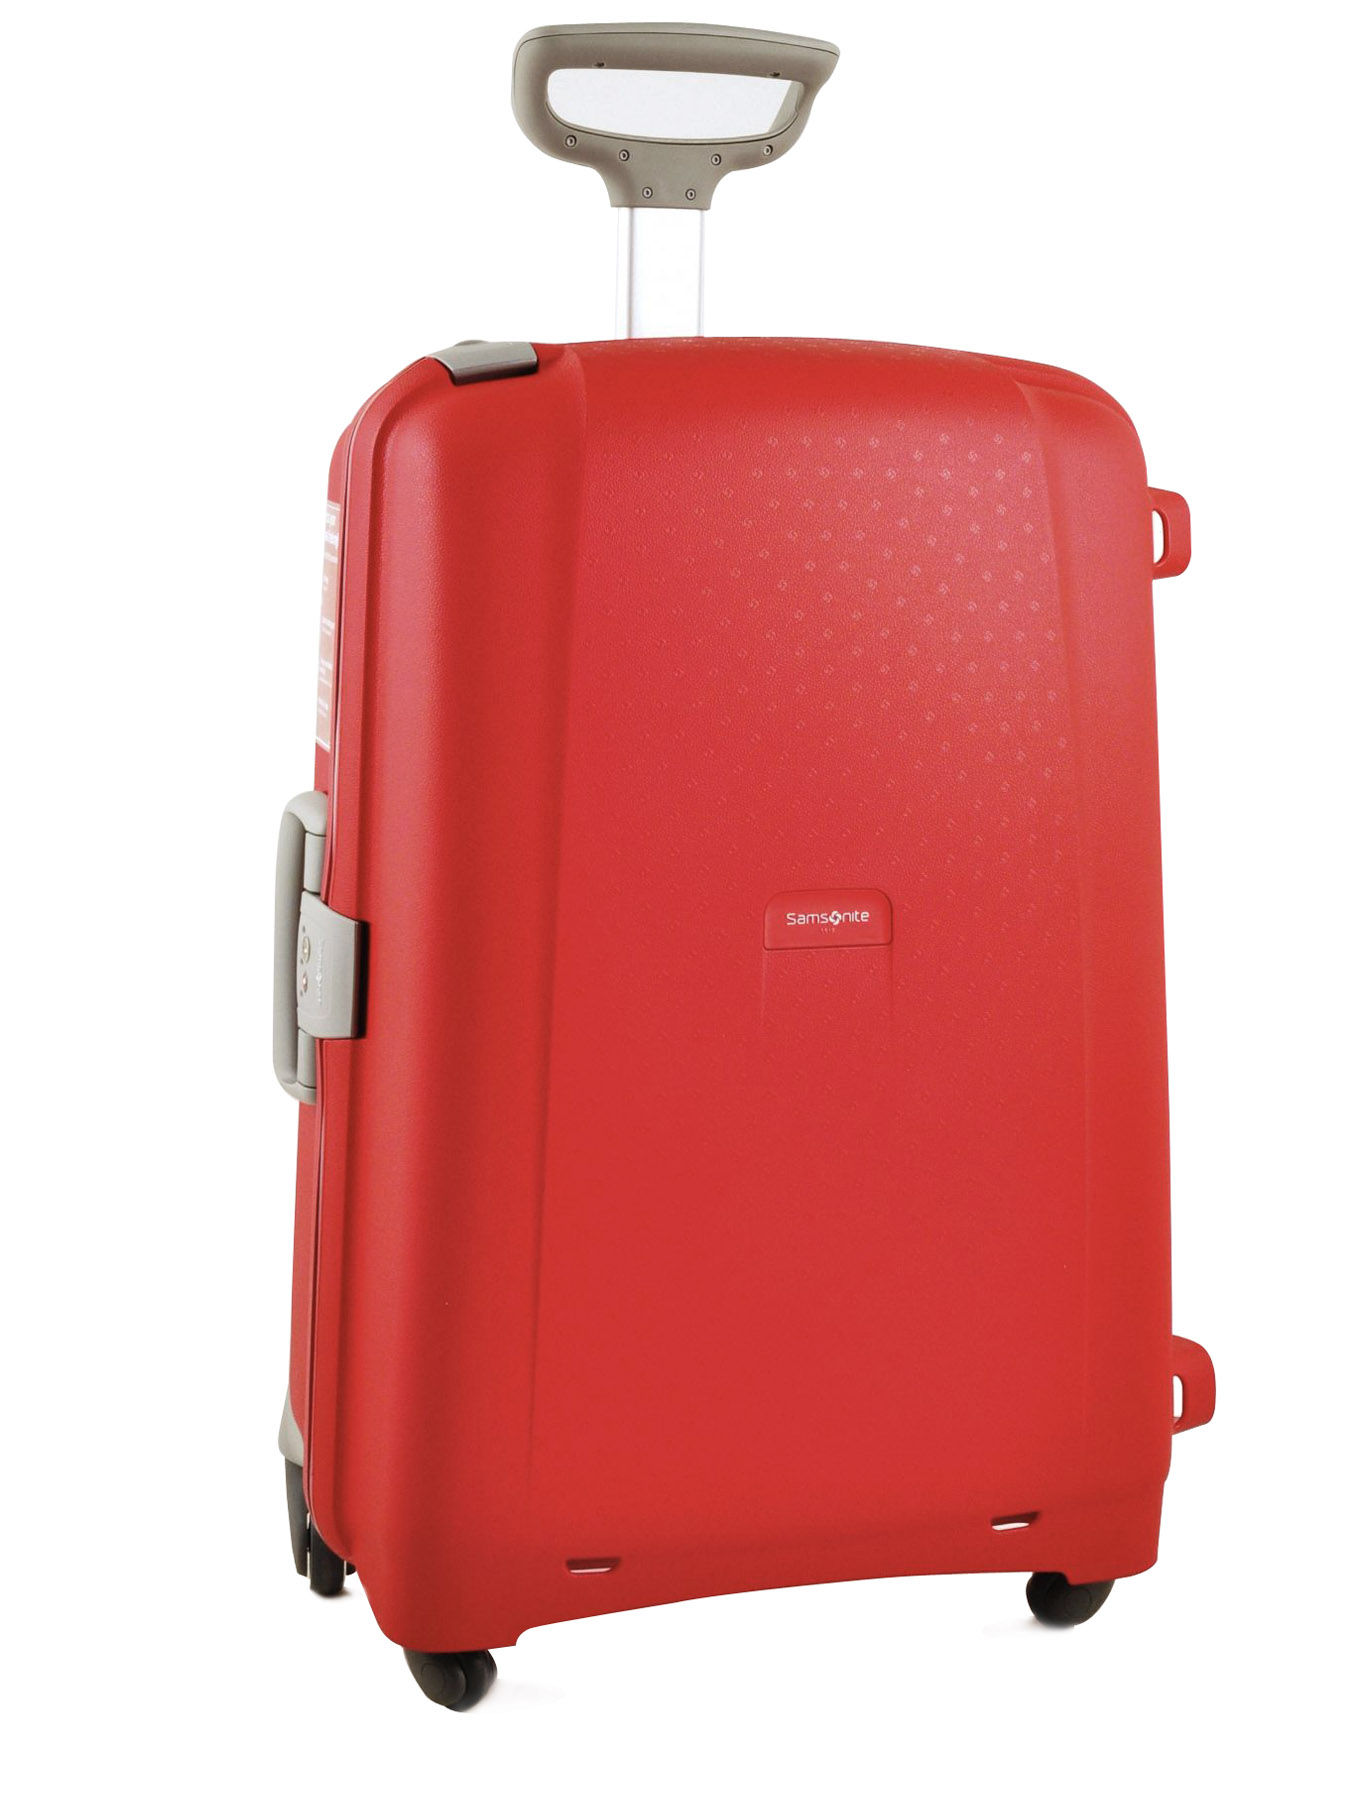 valise 4 roues rigide samsonite red d18168 case 4 wheel. Black Bedroom Furniture Sets. Home Design Ideas